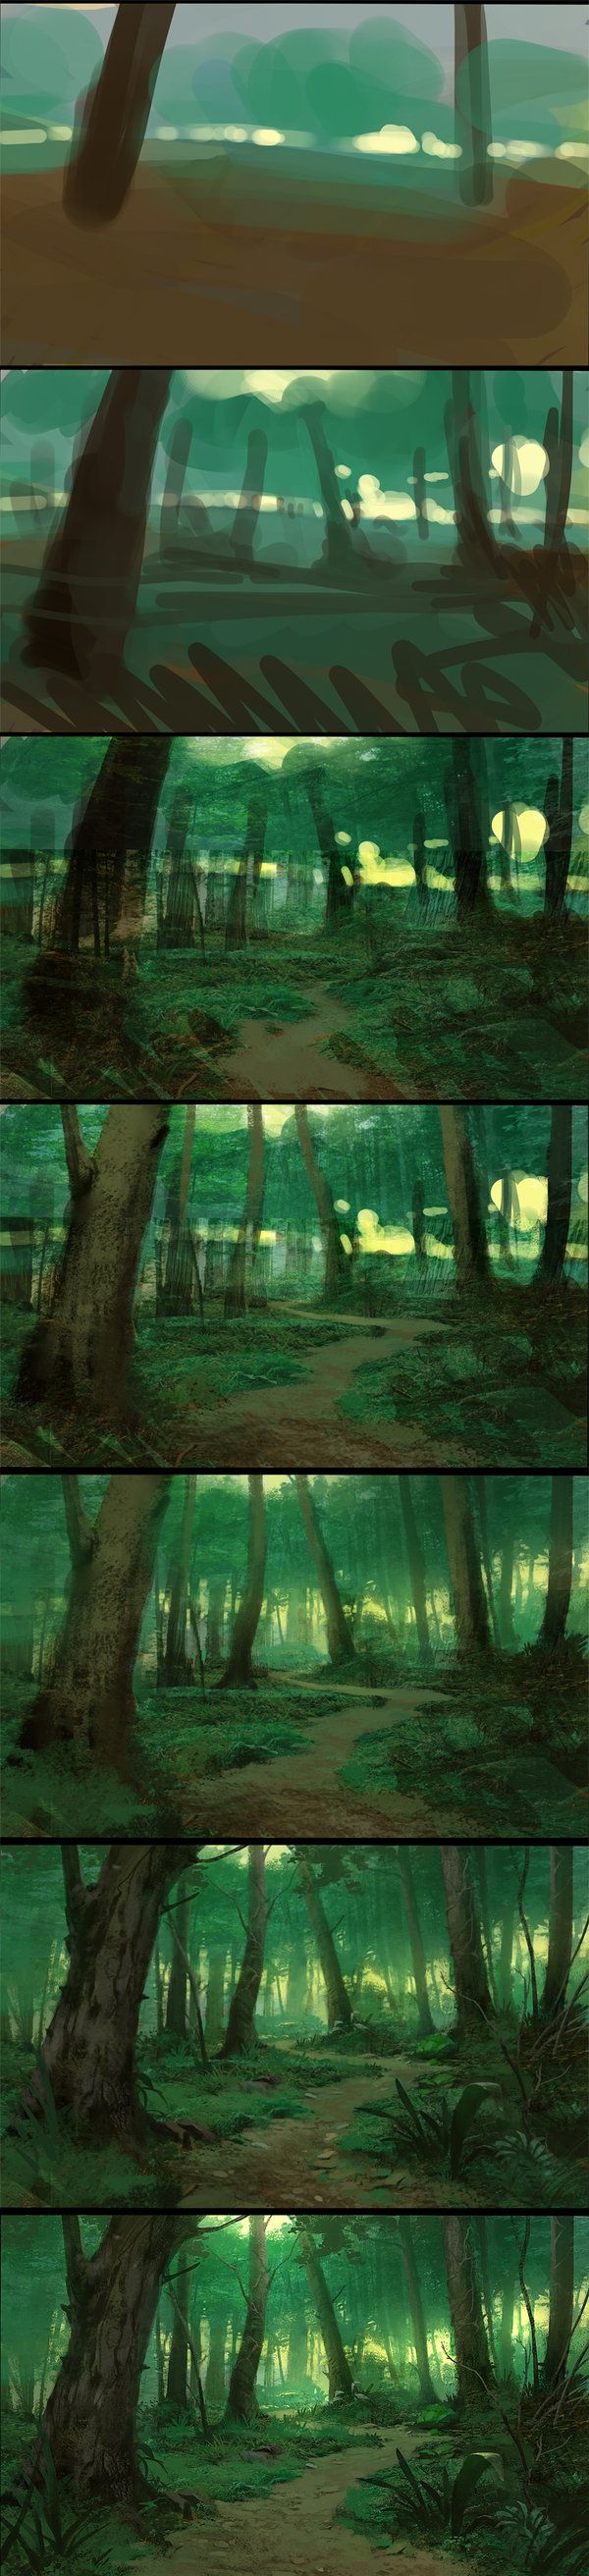 Steps by UnidColor.deviantart.com on @deviantART How the hell did you go from bloby-ness to awesome forest?